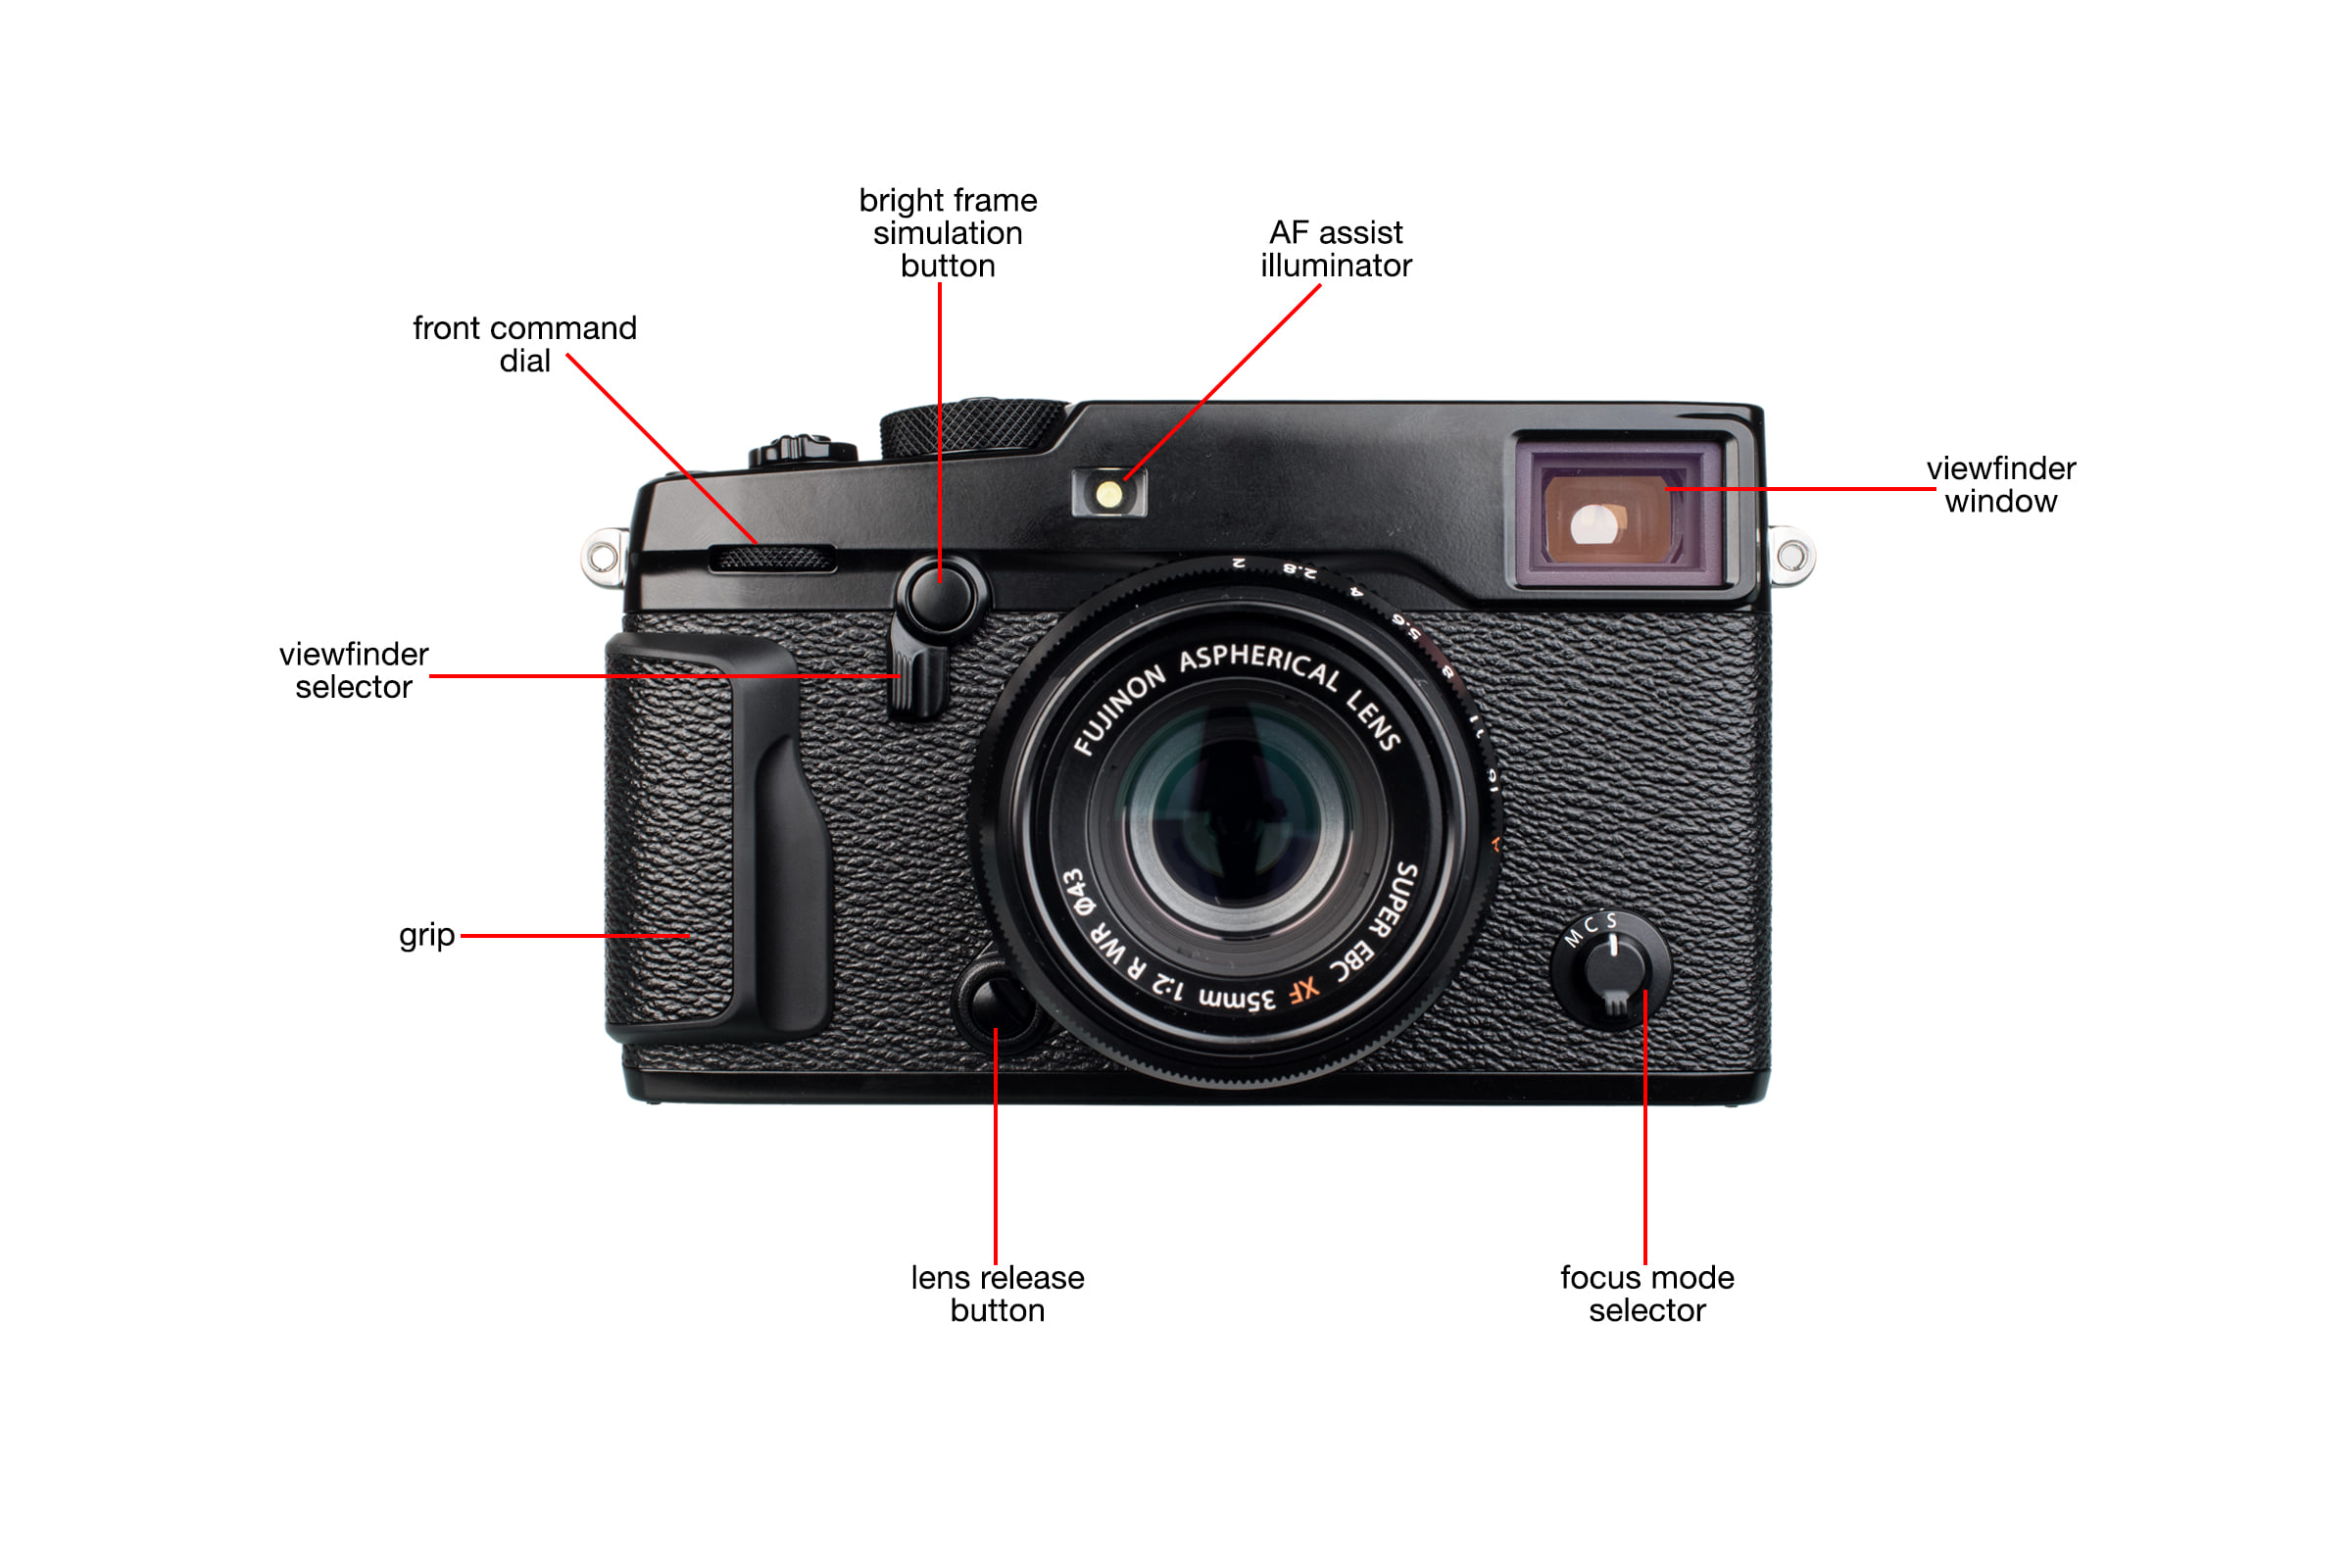 Front view of the Fujifilm X-Pro2.